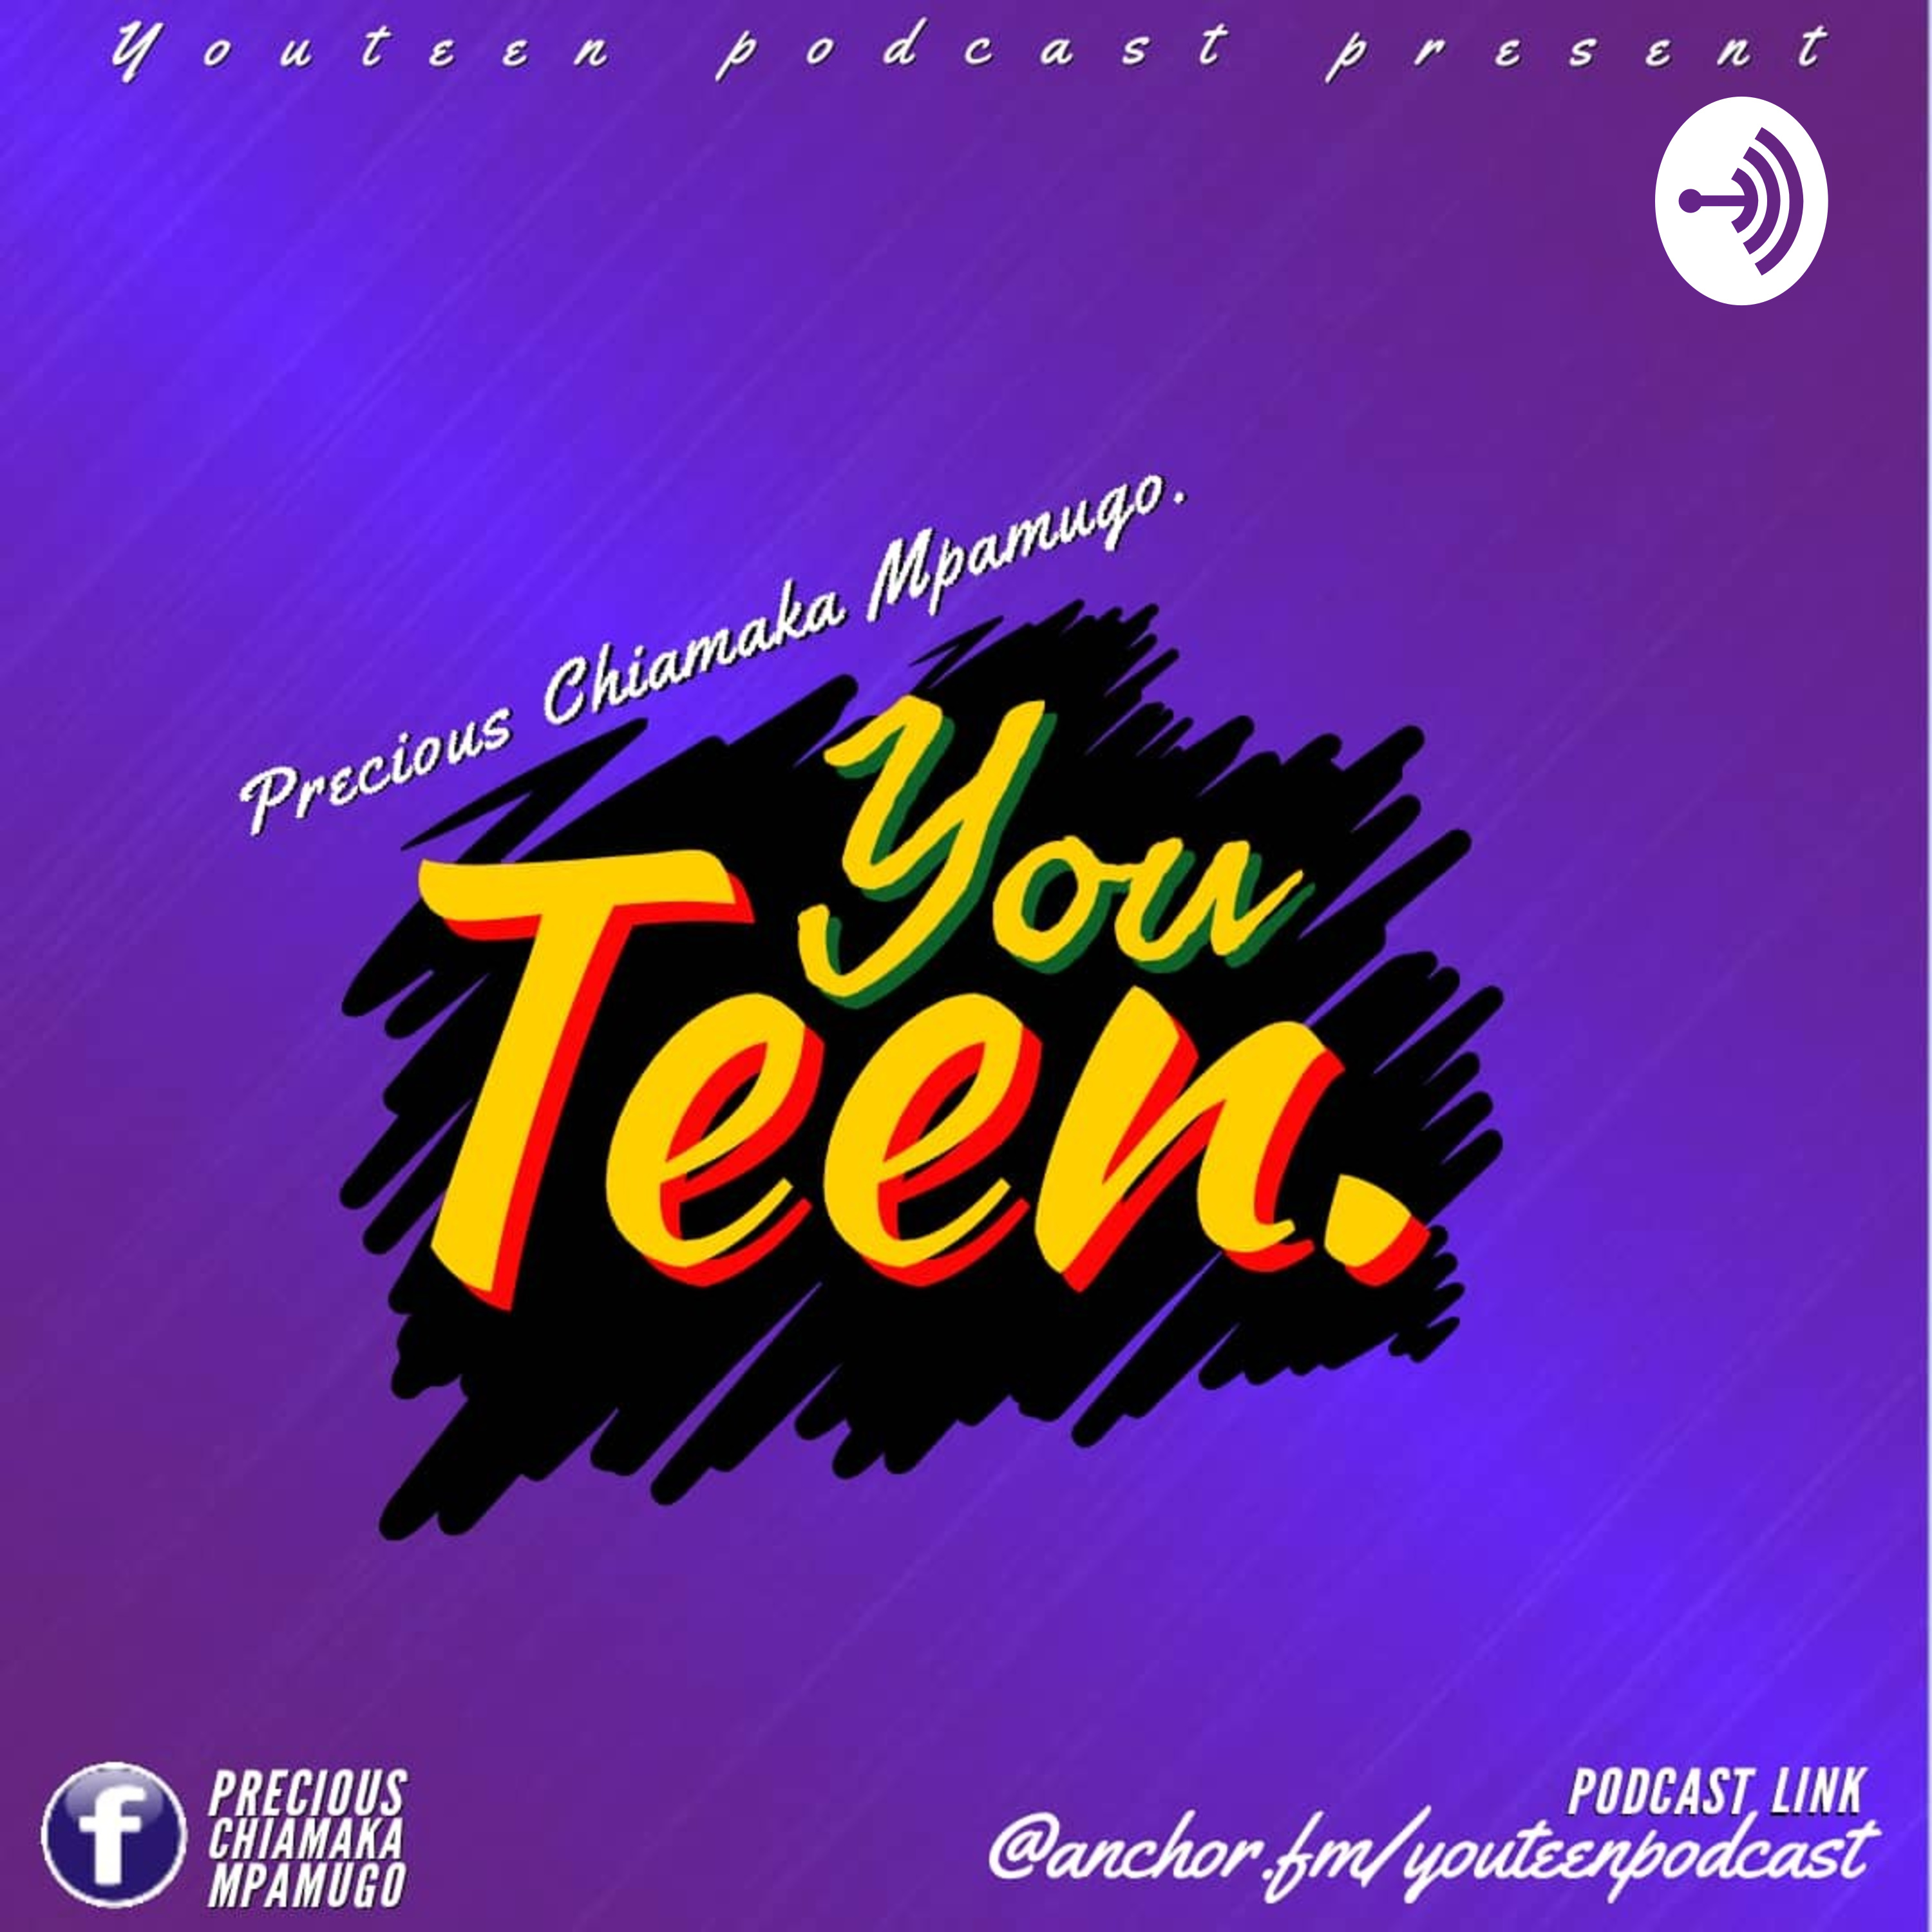 YouTeen Podcast